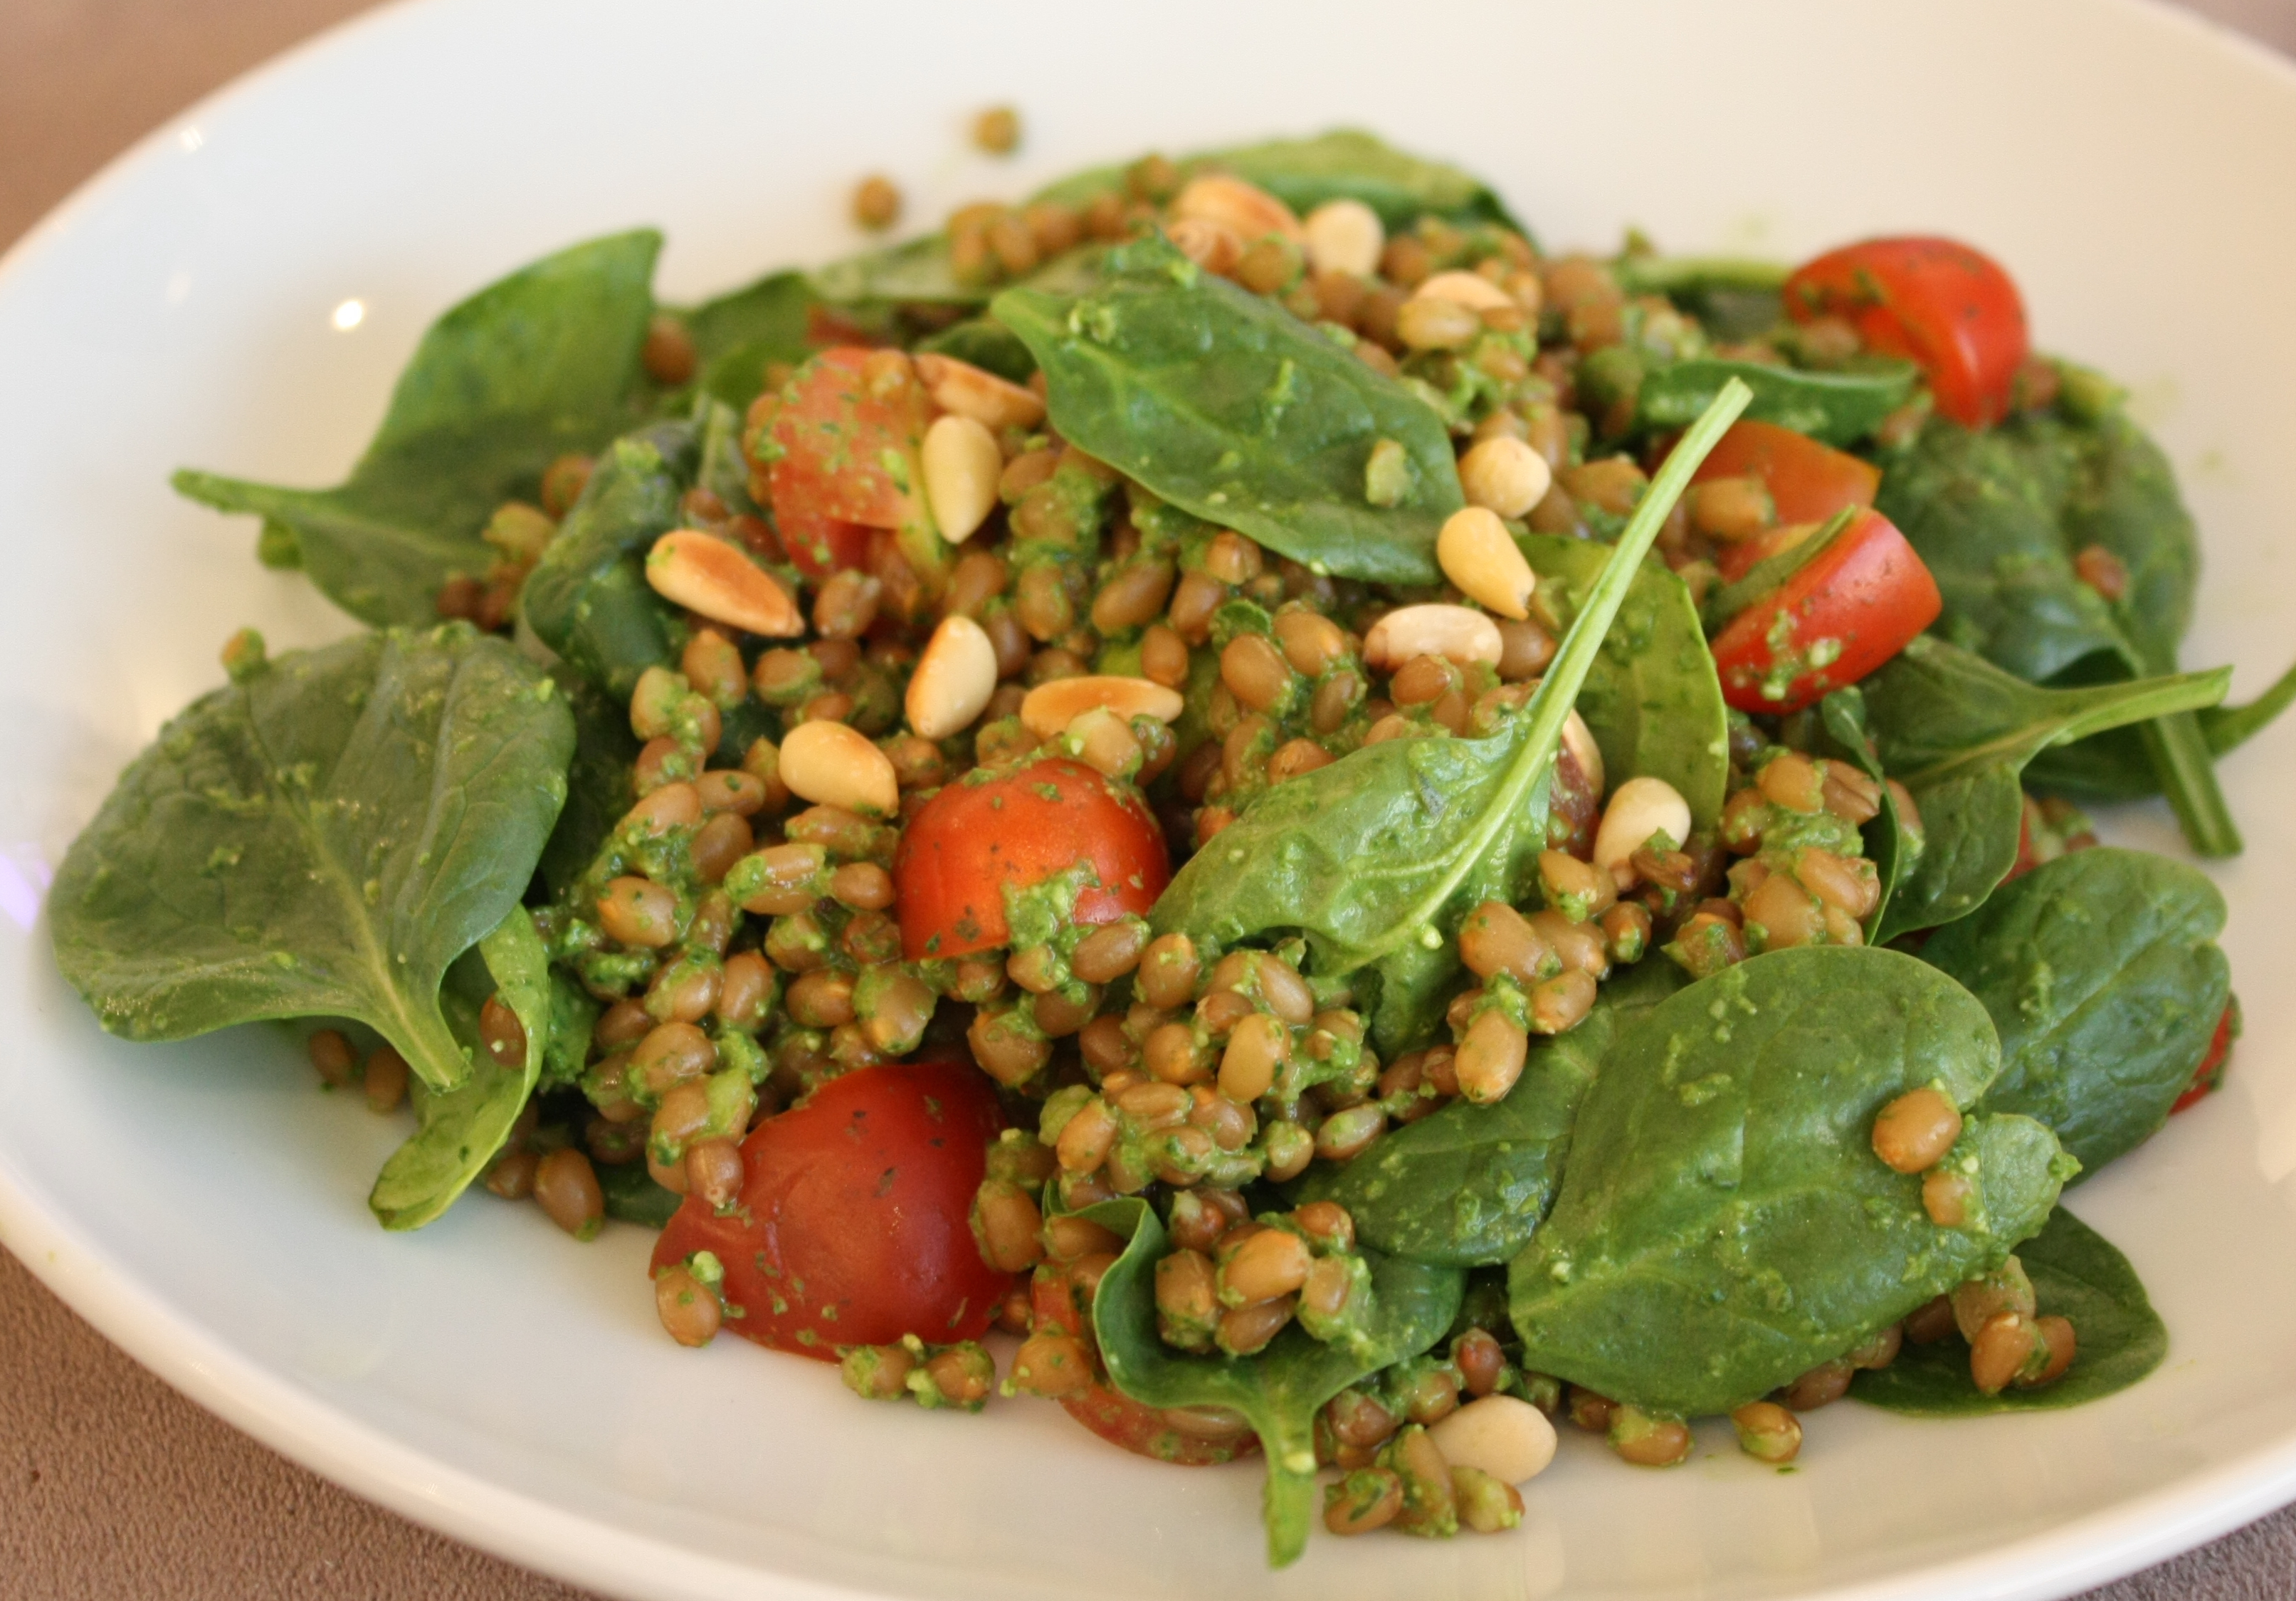 wheat berries arugula pesto wheat berries arugula pesto wheat berries ...